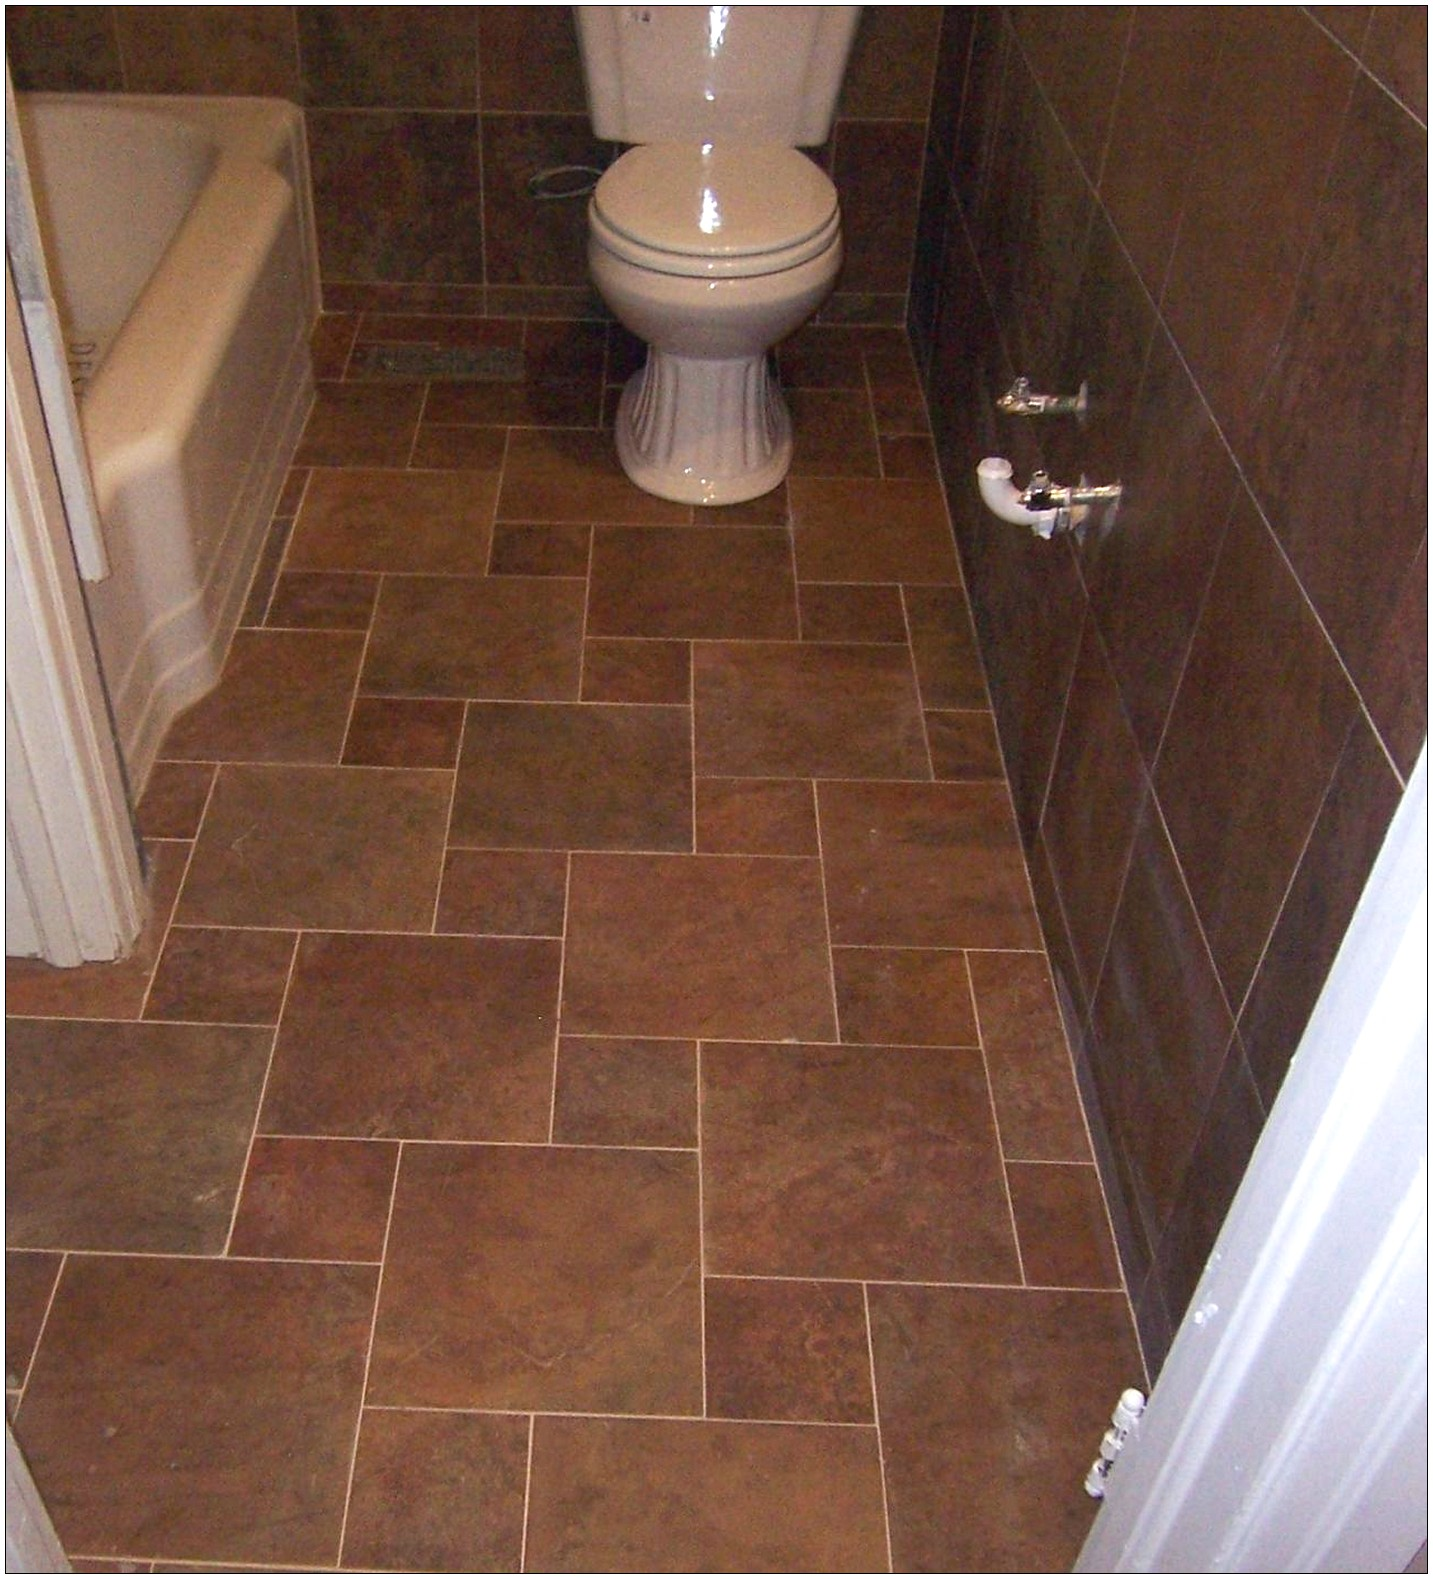 bathroom tile floor ideas for small bathrooms 25 wonderful ideas and pictures of decorative bathroom 25941 | bathroom floor tile design home design example bathroom floor tile designs bathroom floor tile designs1